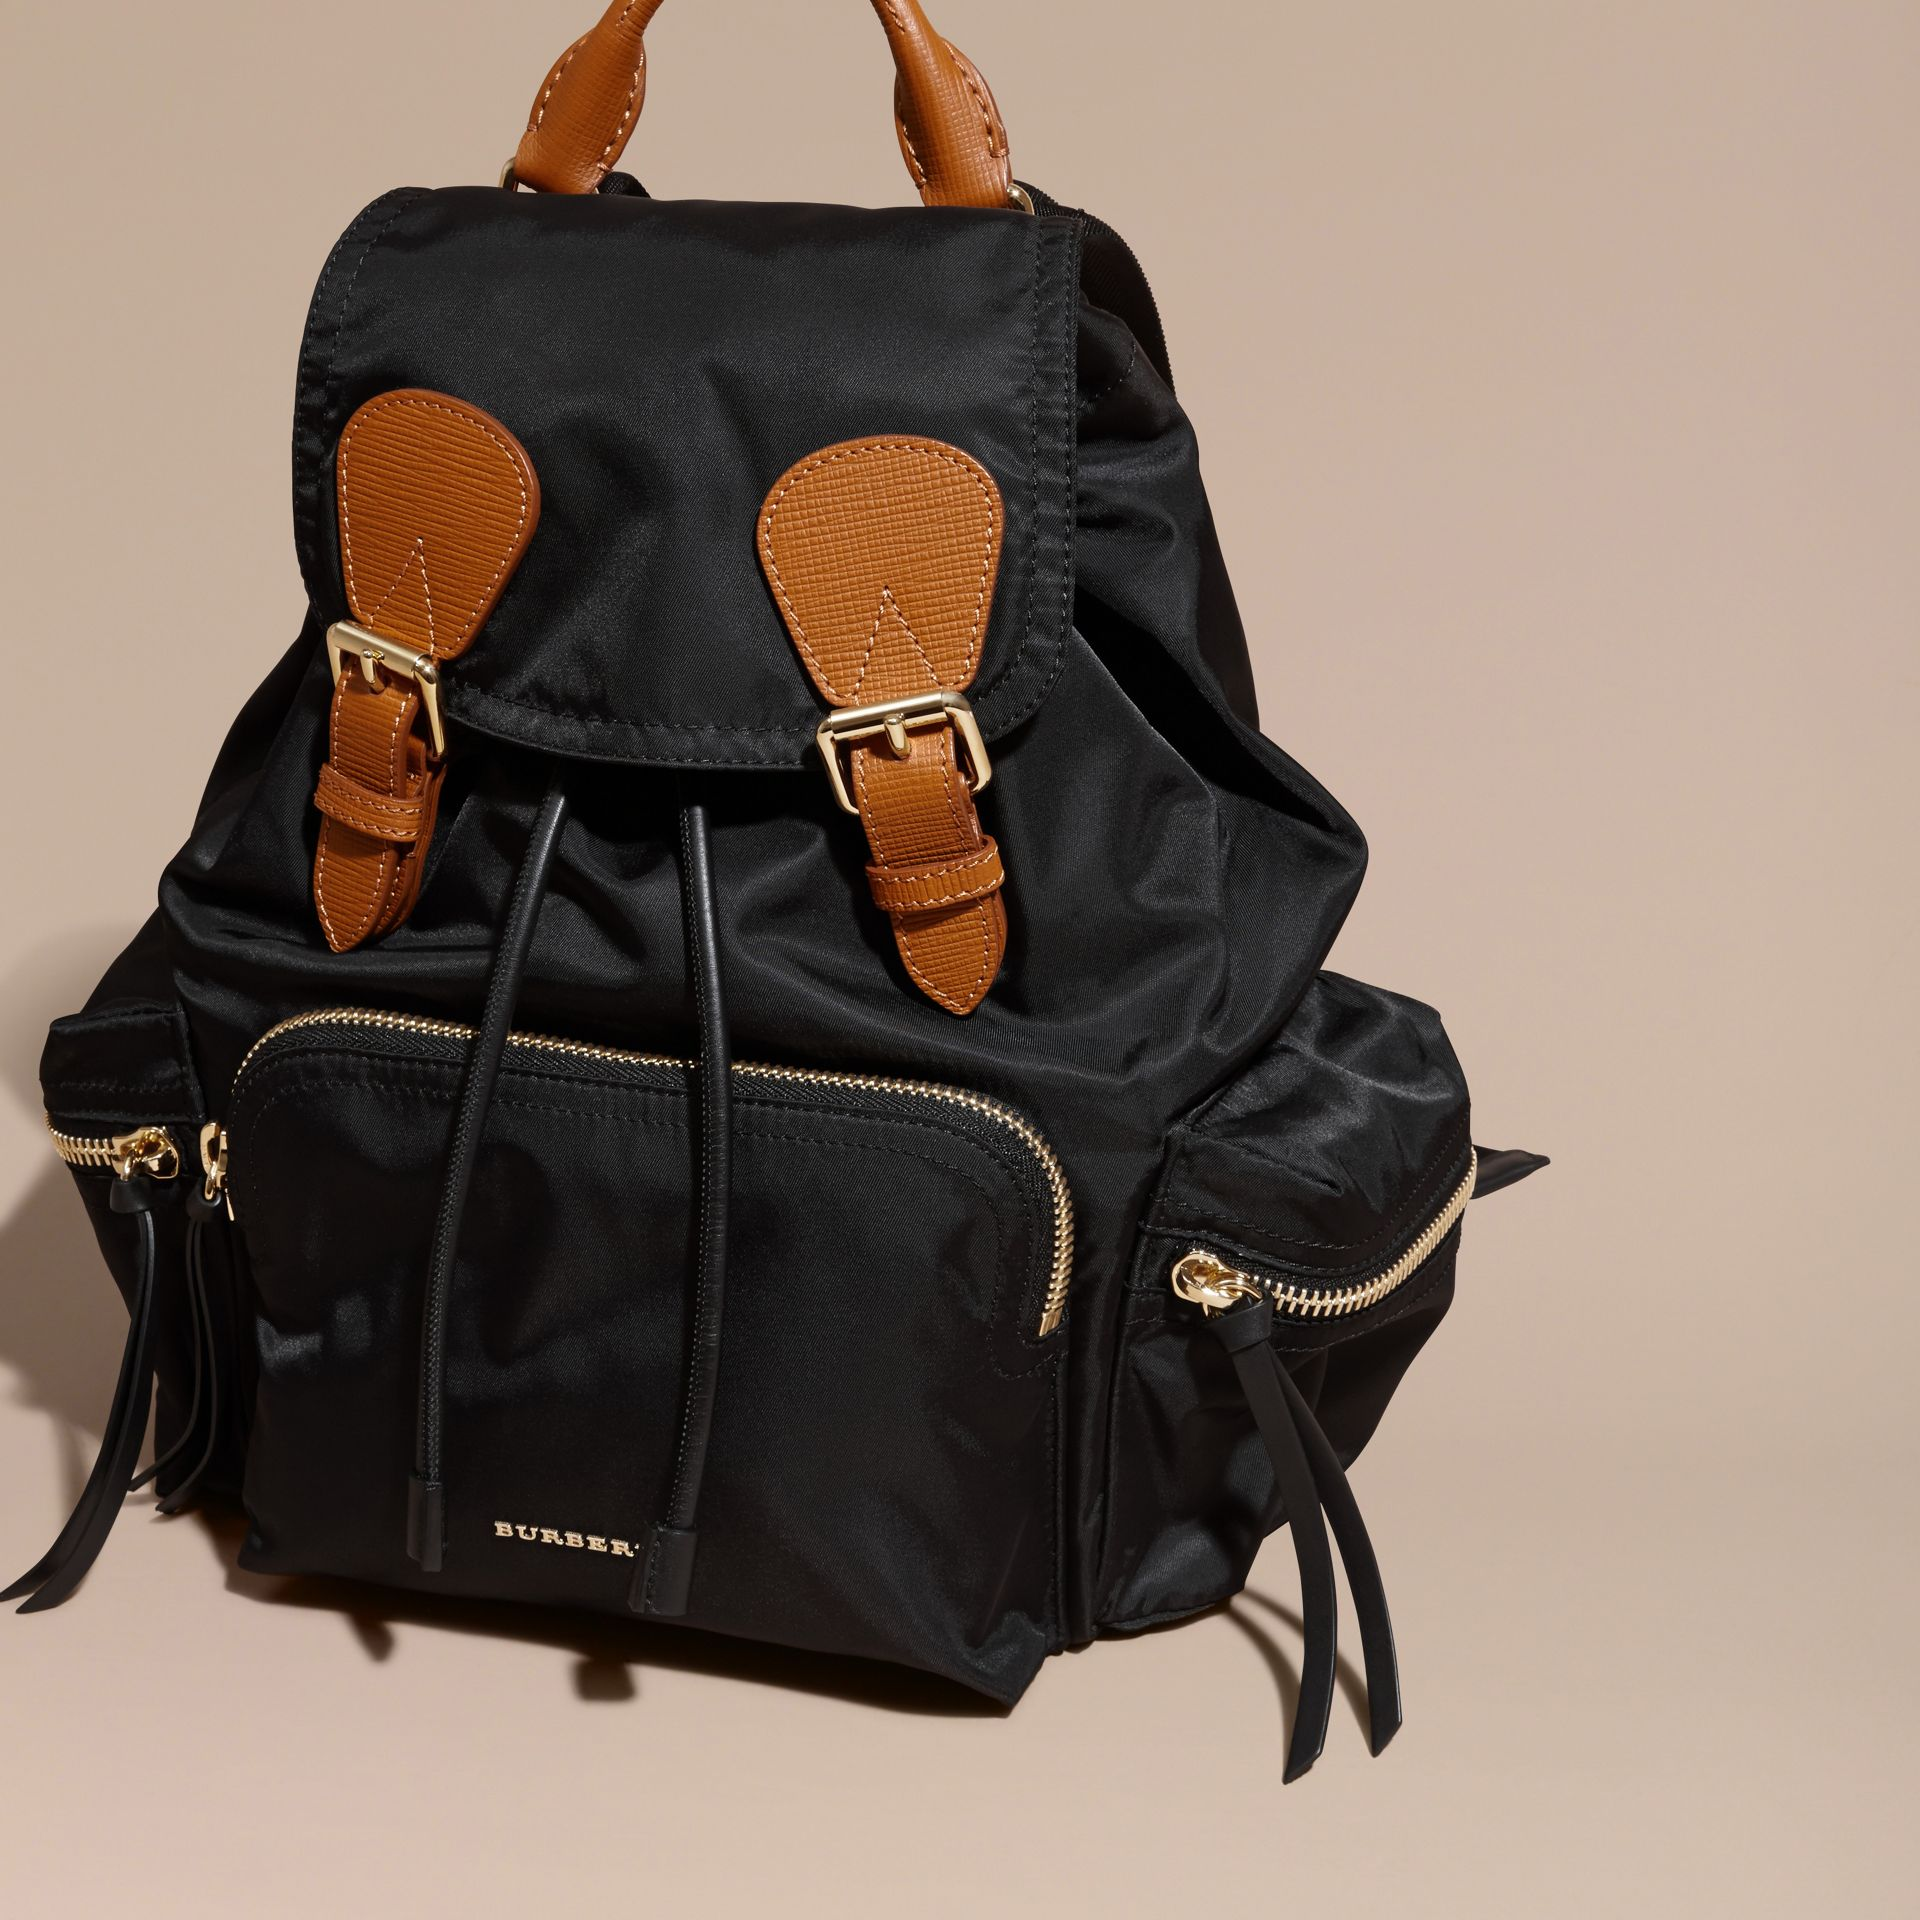 Sac The Rucksack moyen en nylon technique et cuir (Noir) - Femme | Burberry - photo de la galerie 8